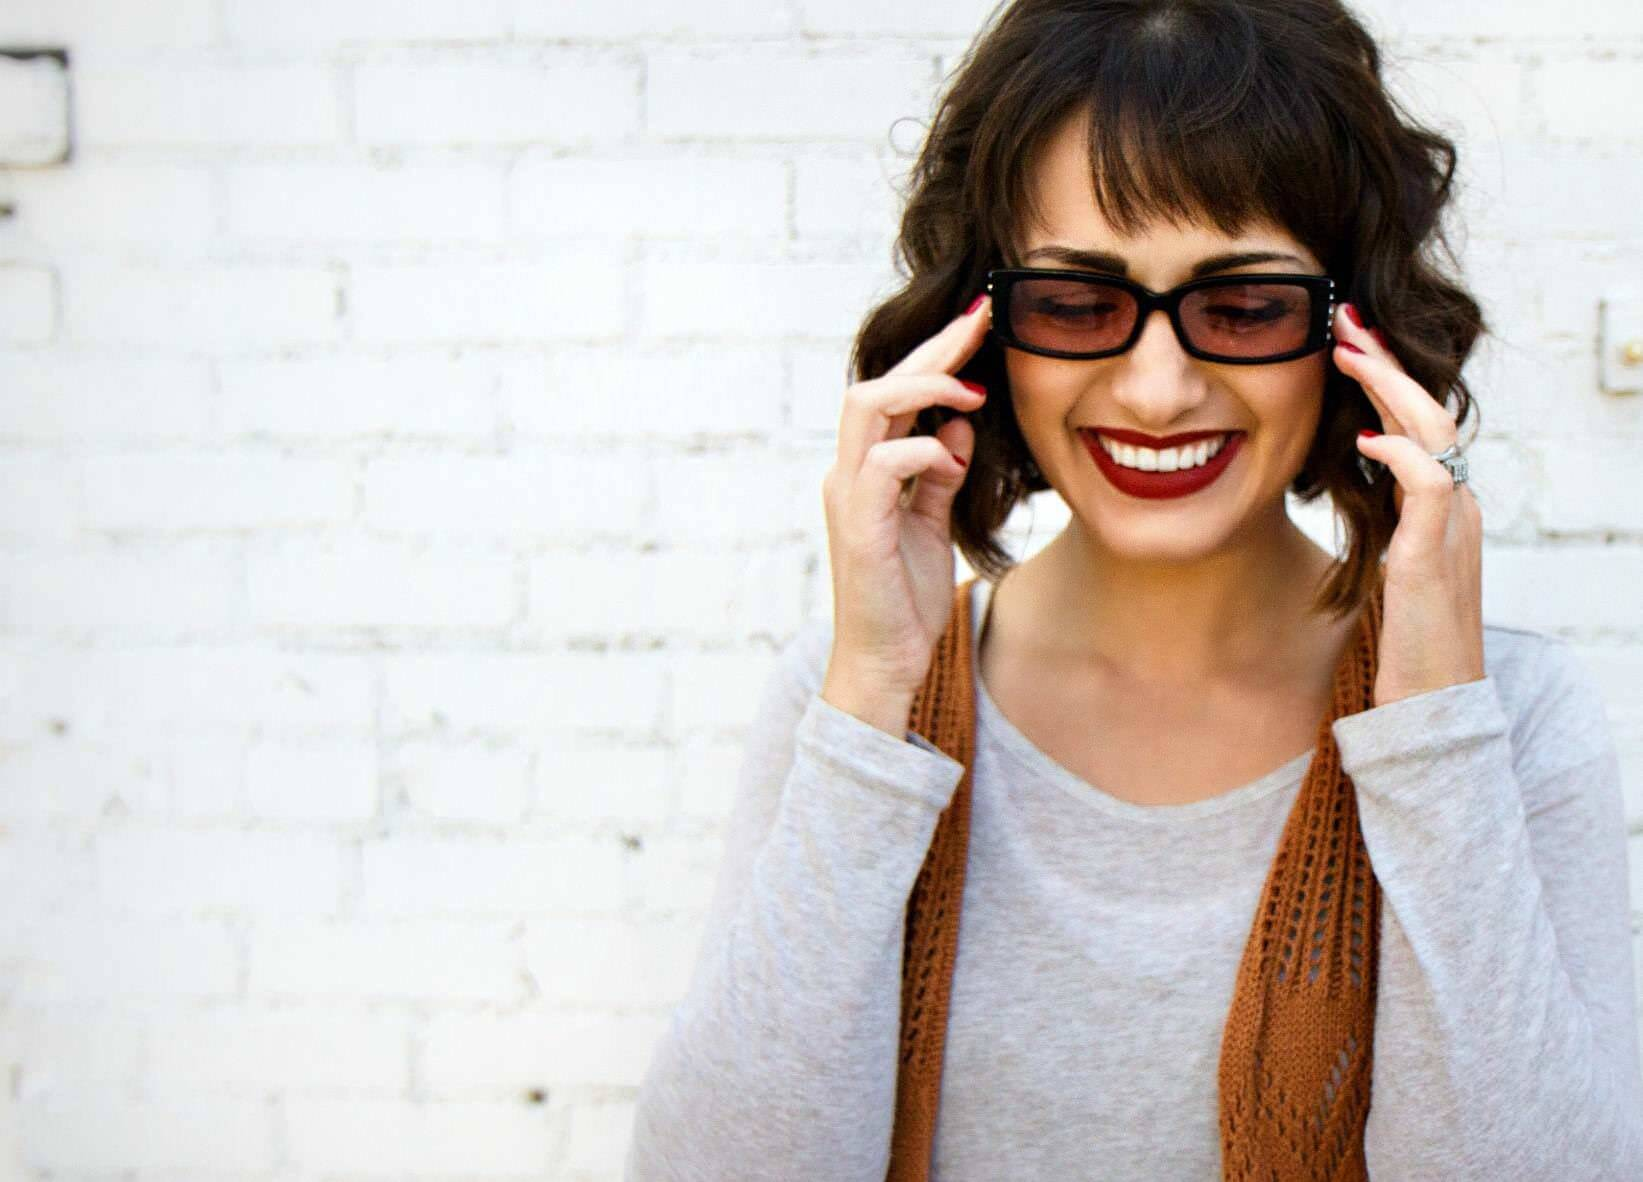 Woman wearing migraine glasses and smiling